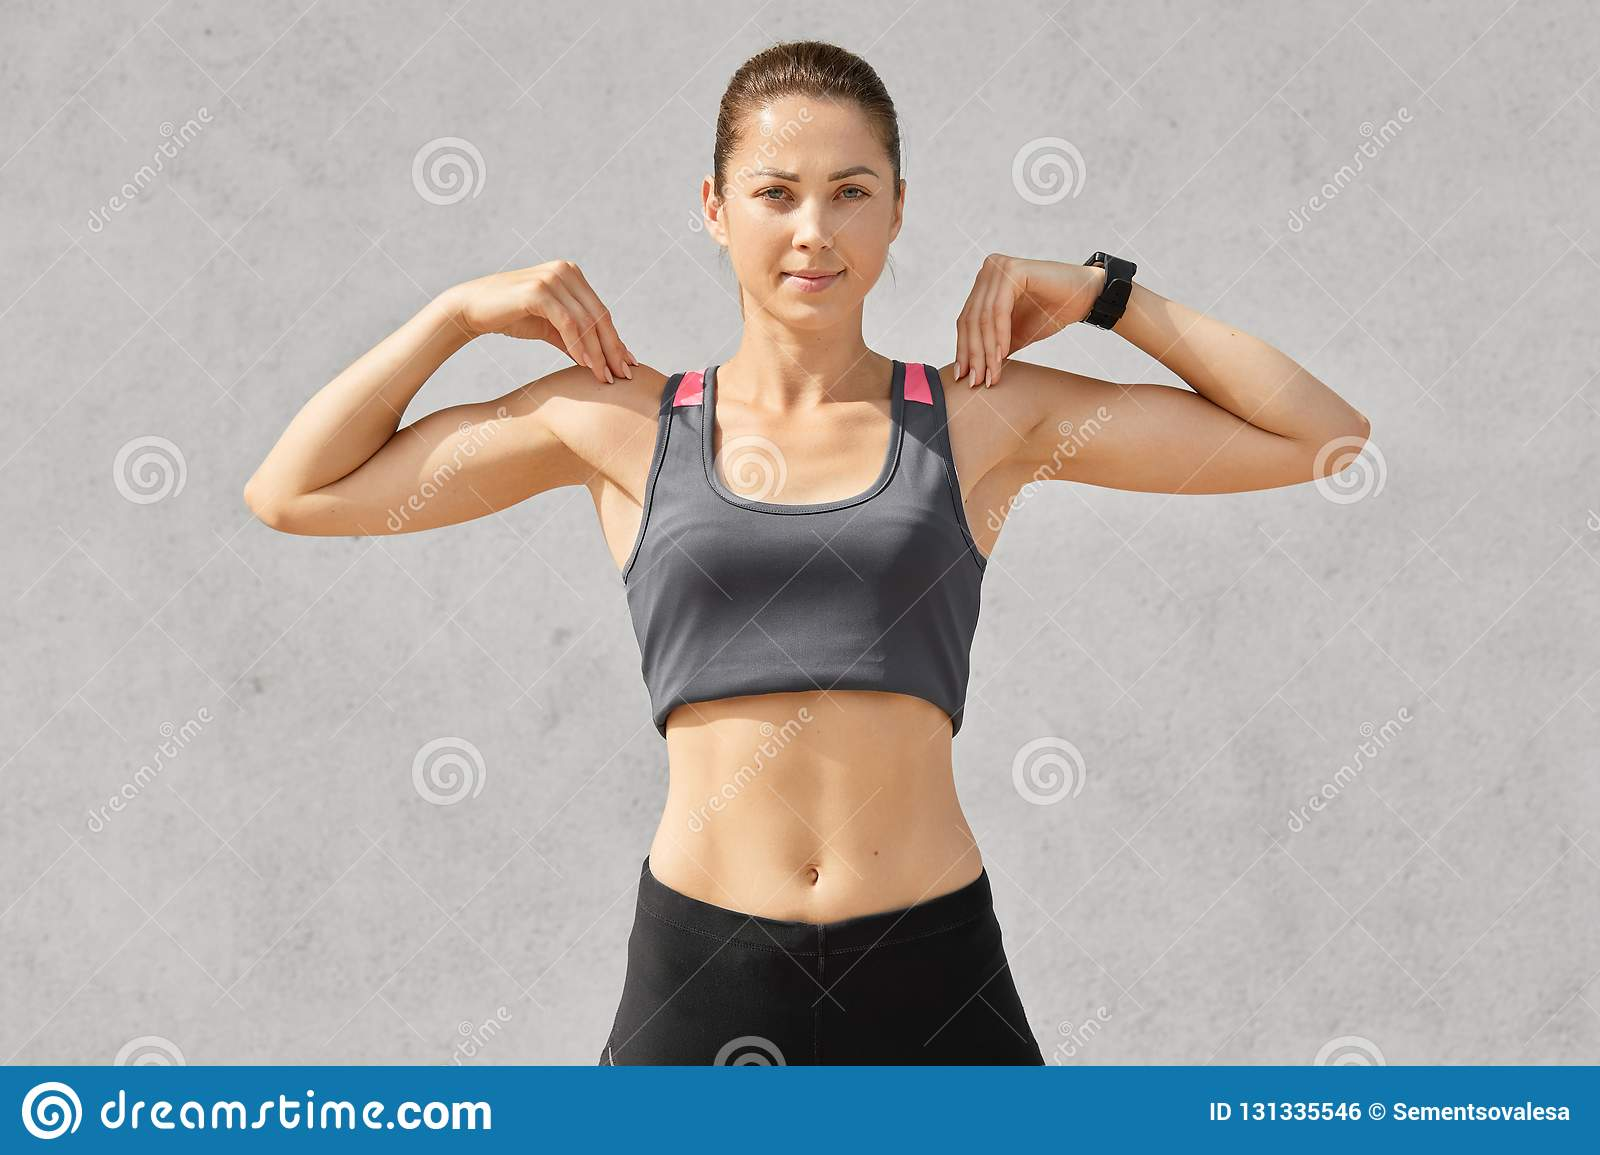 Waist Up Shot Of Sporty Woman Keeps Both Hands On Shoulders